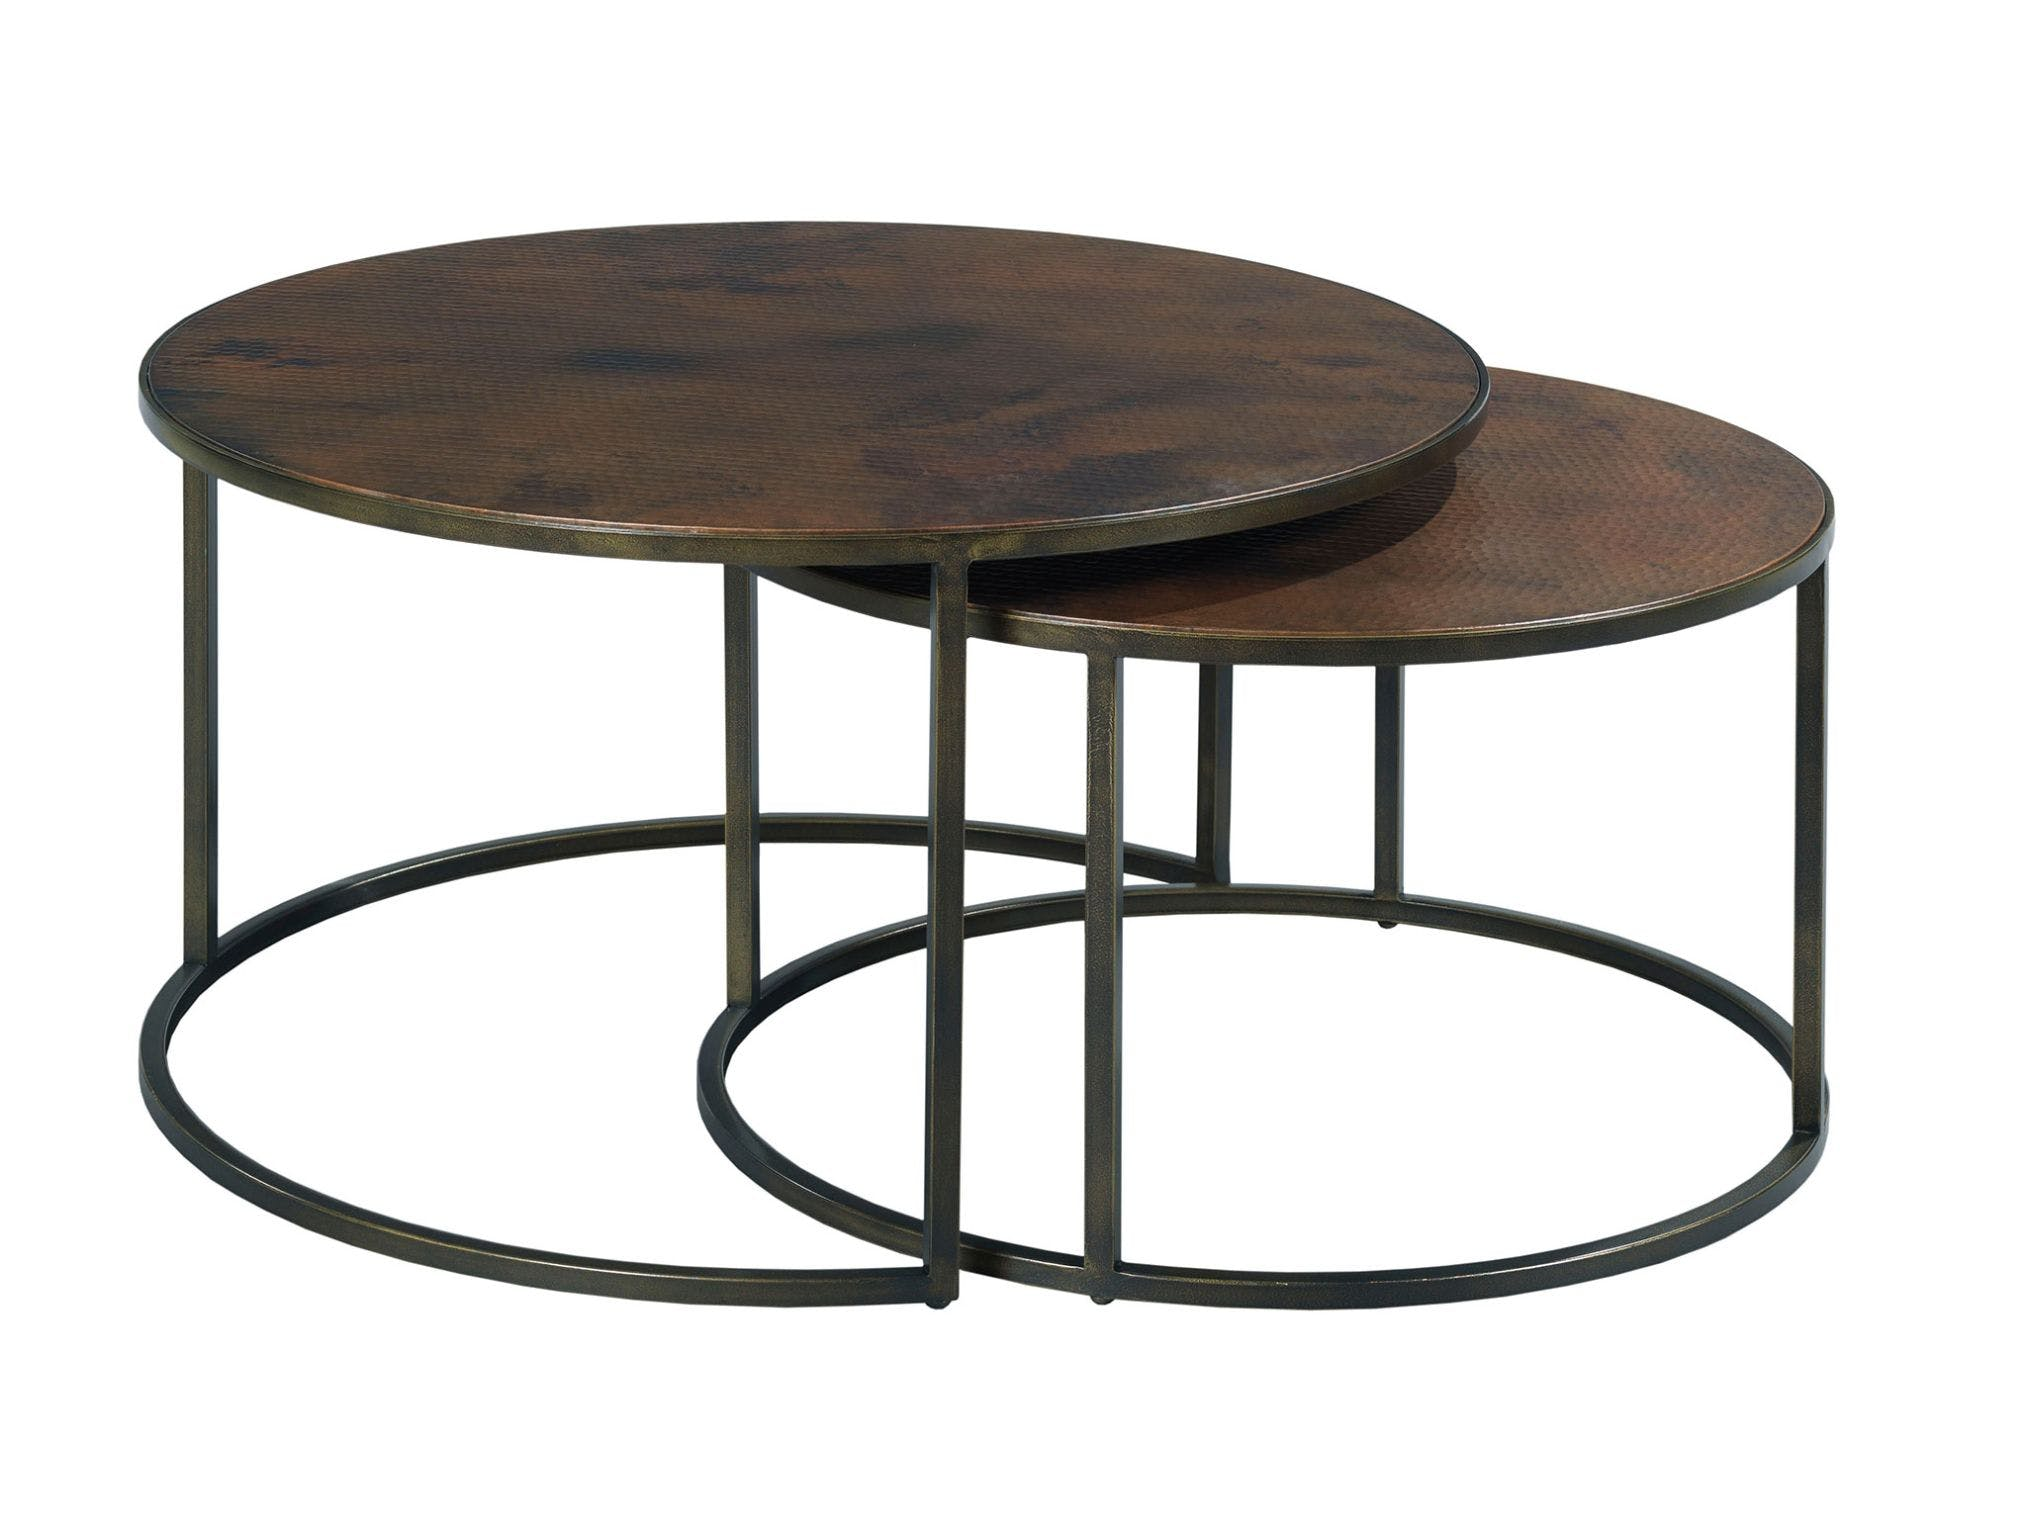 Hammary Living Room Round Cocktail Table 553 911 D Noblin Furniture Pearl And Jackson Ms